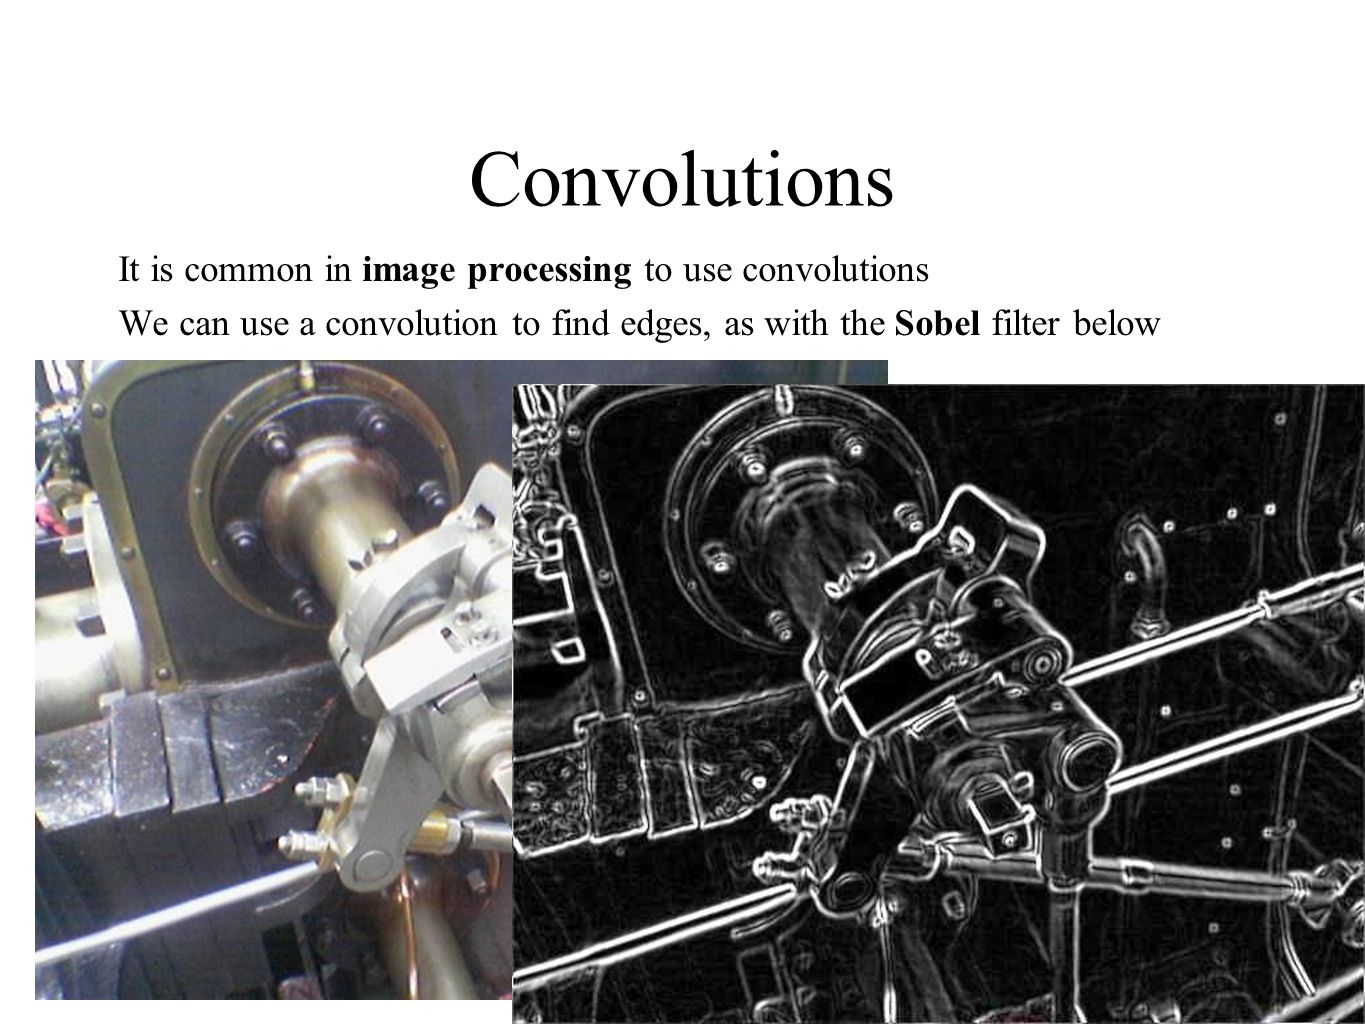 Convolutions It is common in image processing to use convolutions We can use a convolution to find edges, as with the Sobel filter below